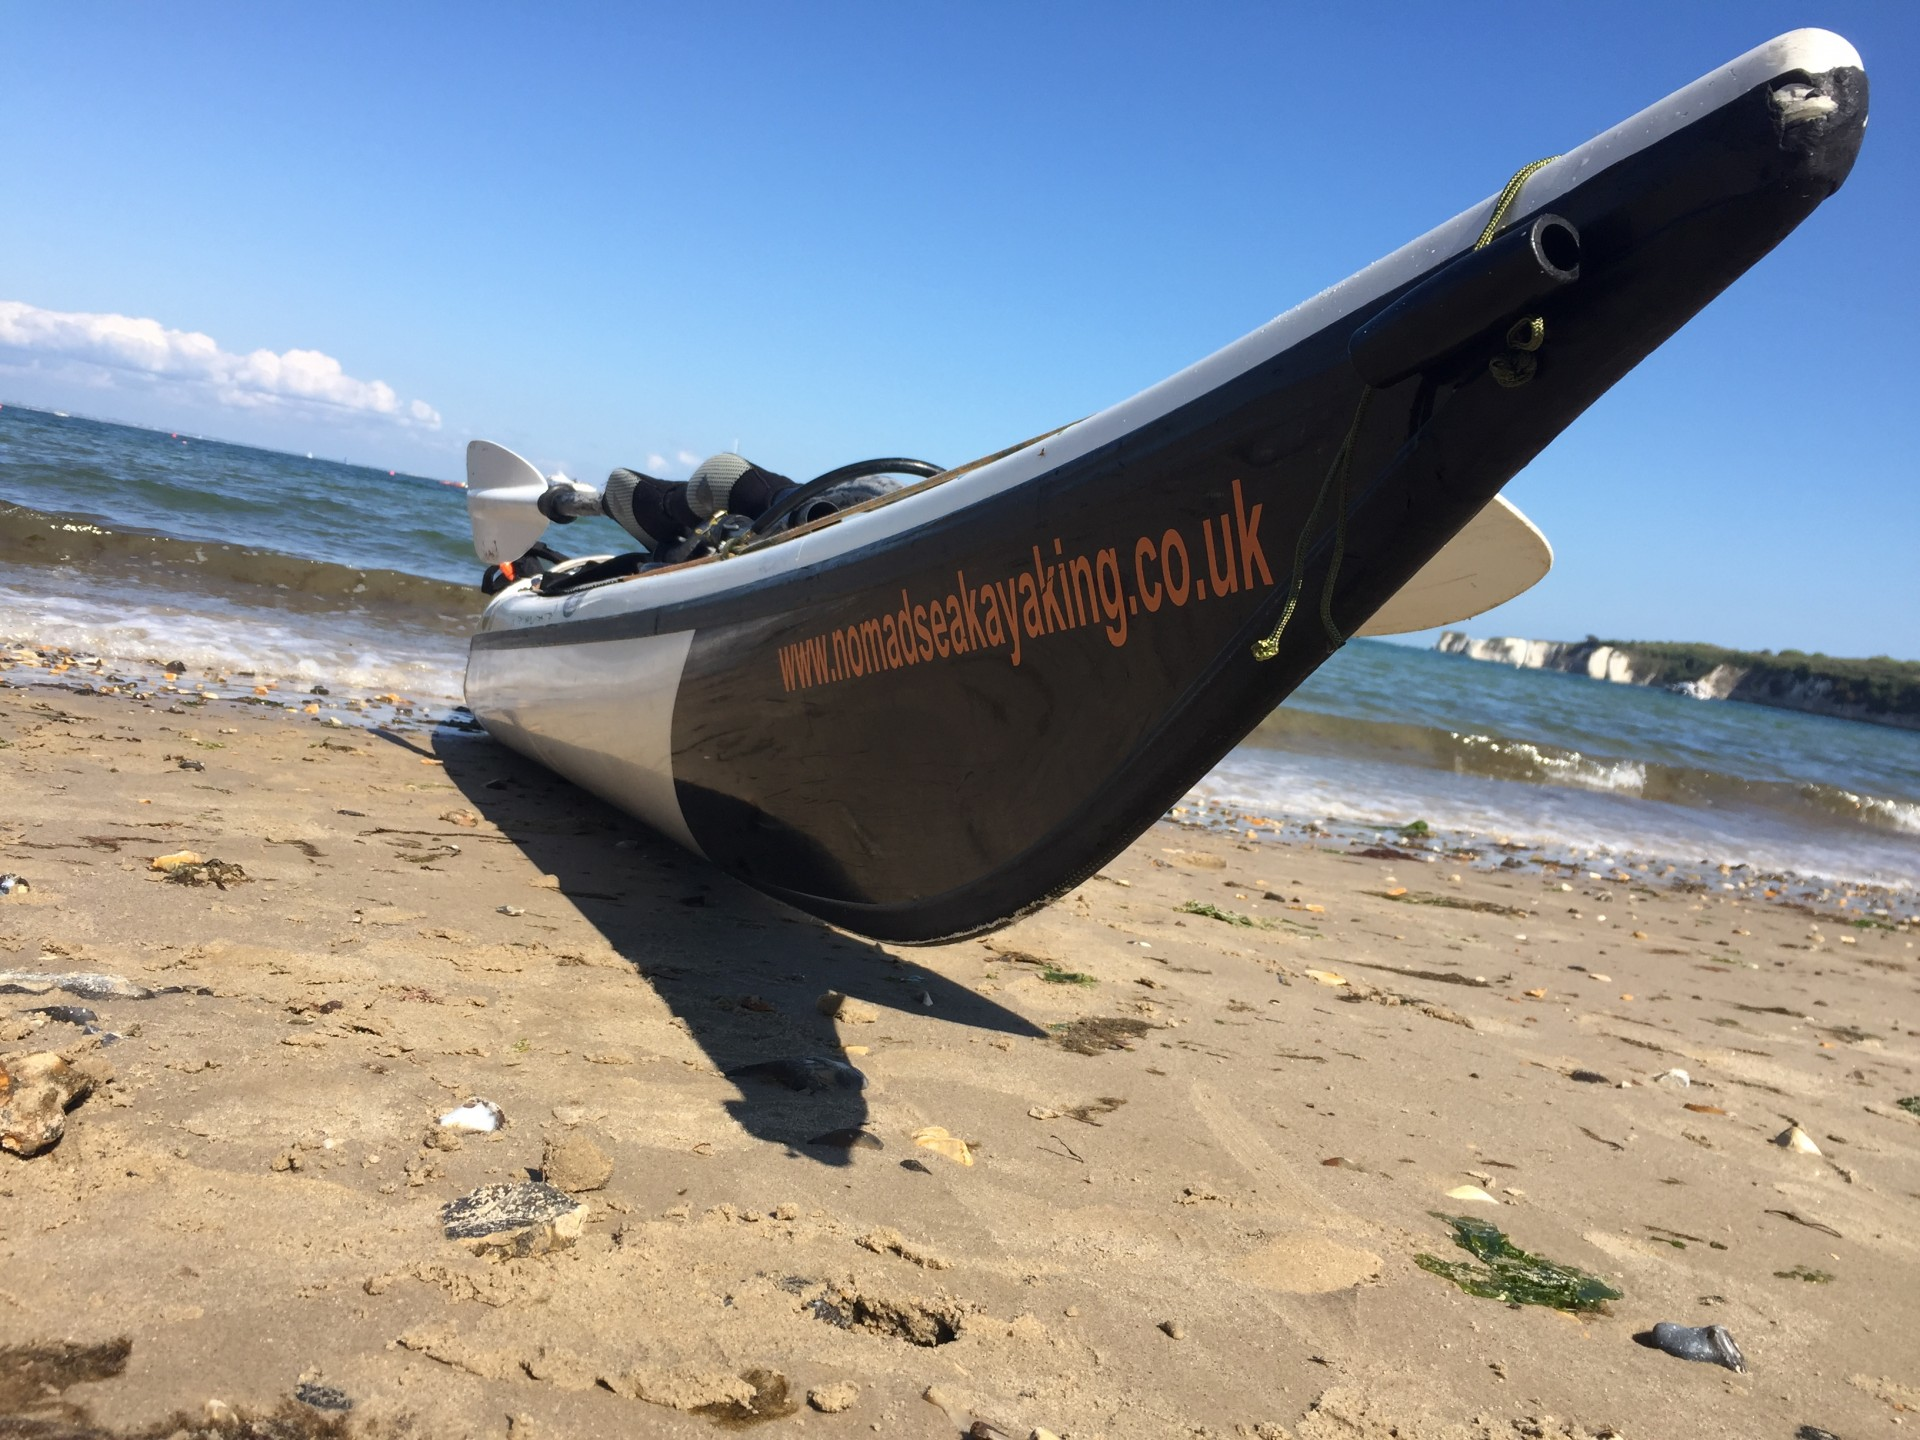 A sea kayak on a sandy beach with blue skies.